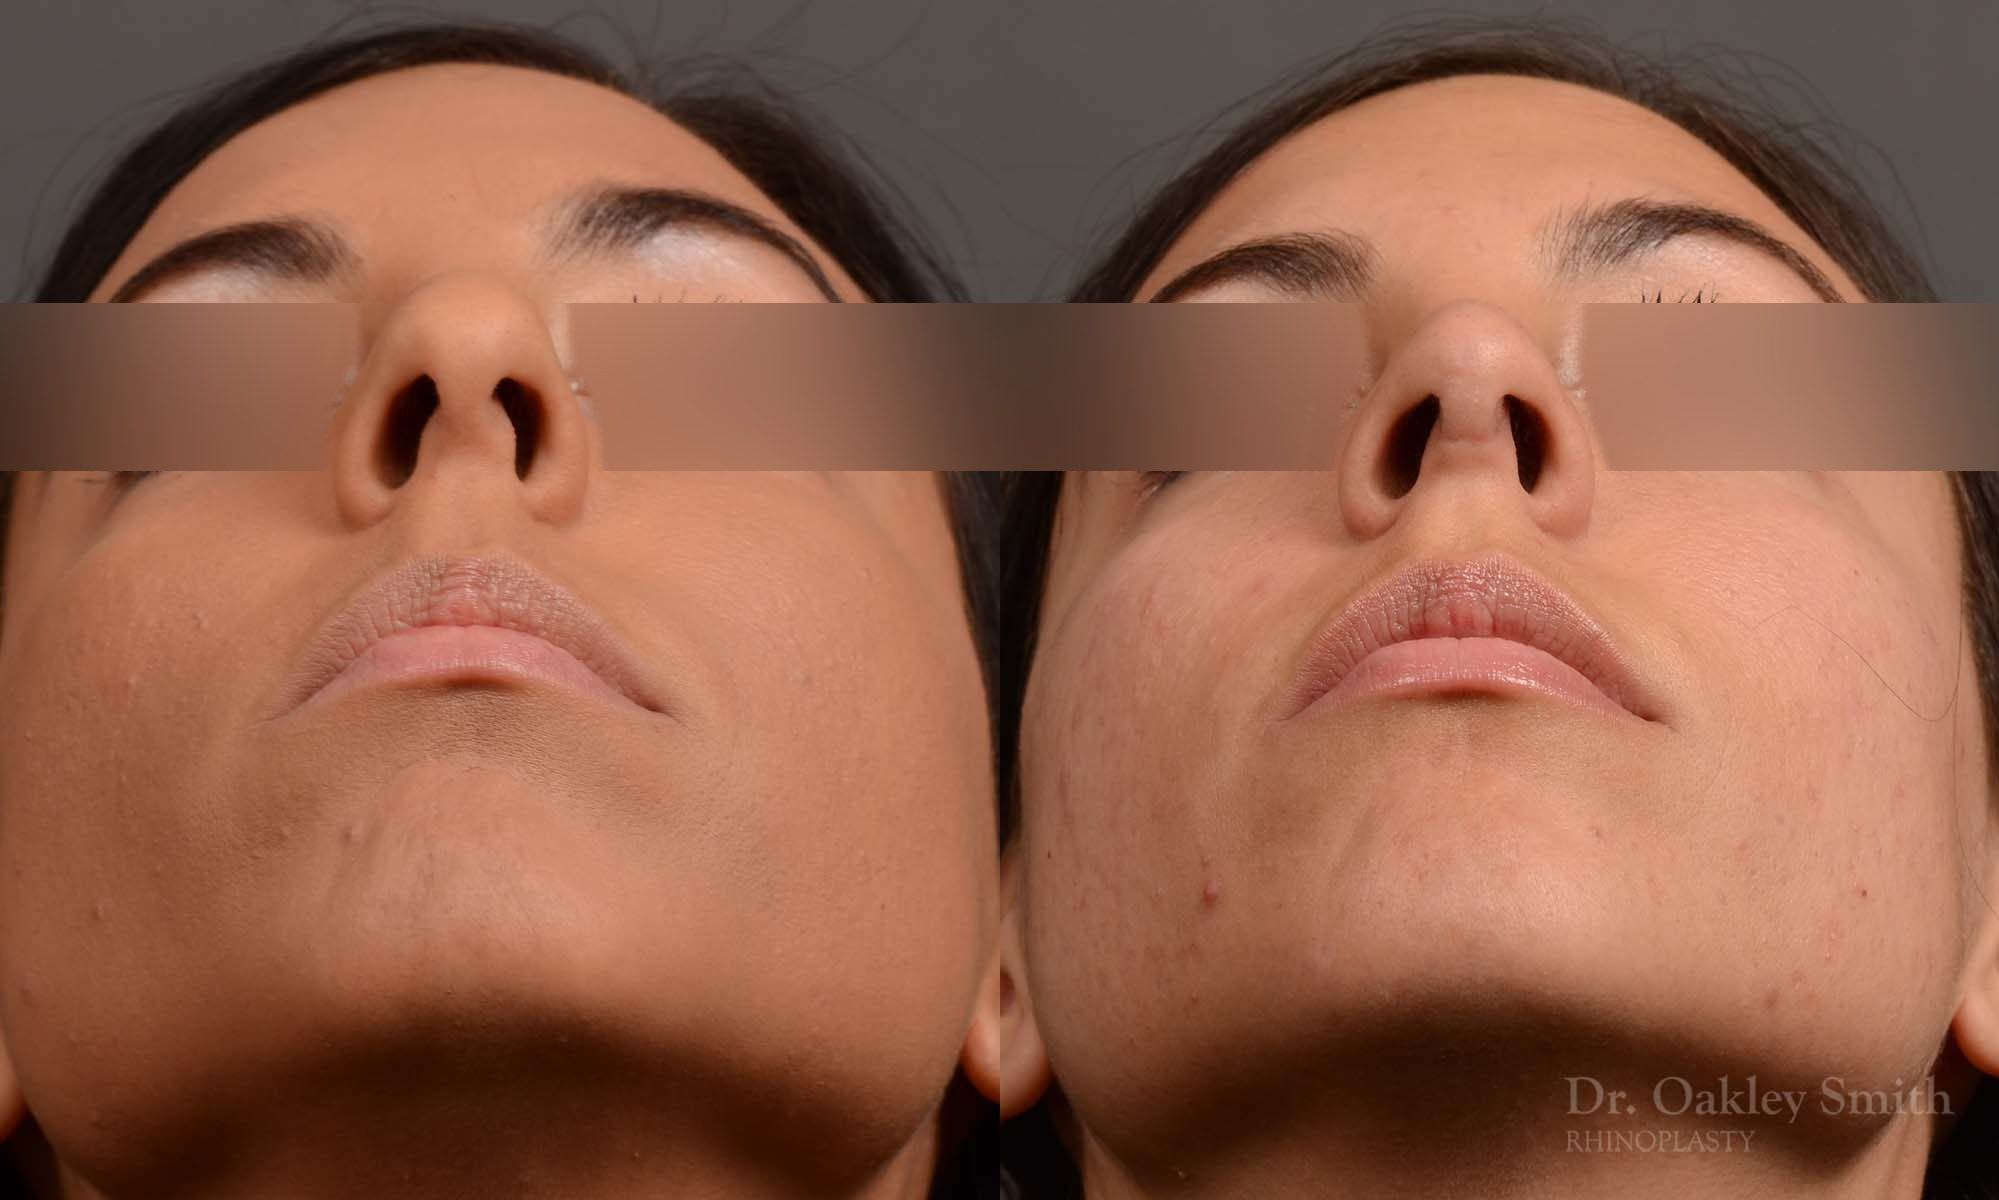 Hump Reduction, Rhinoplasty - Rhinoplasty Before and After Case 320